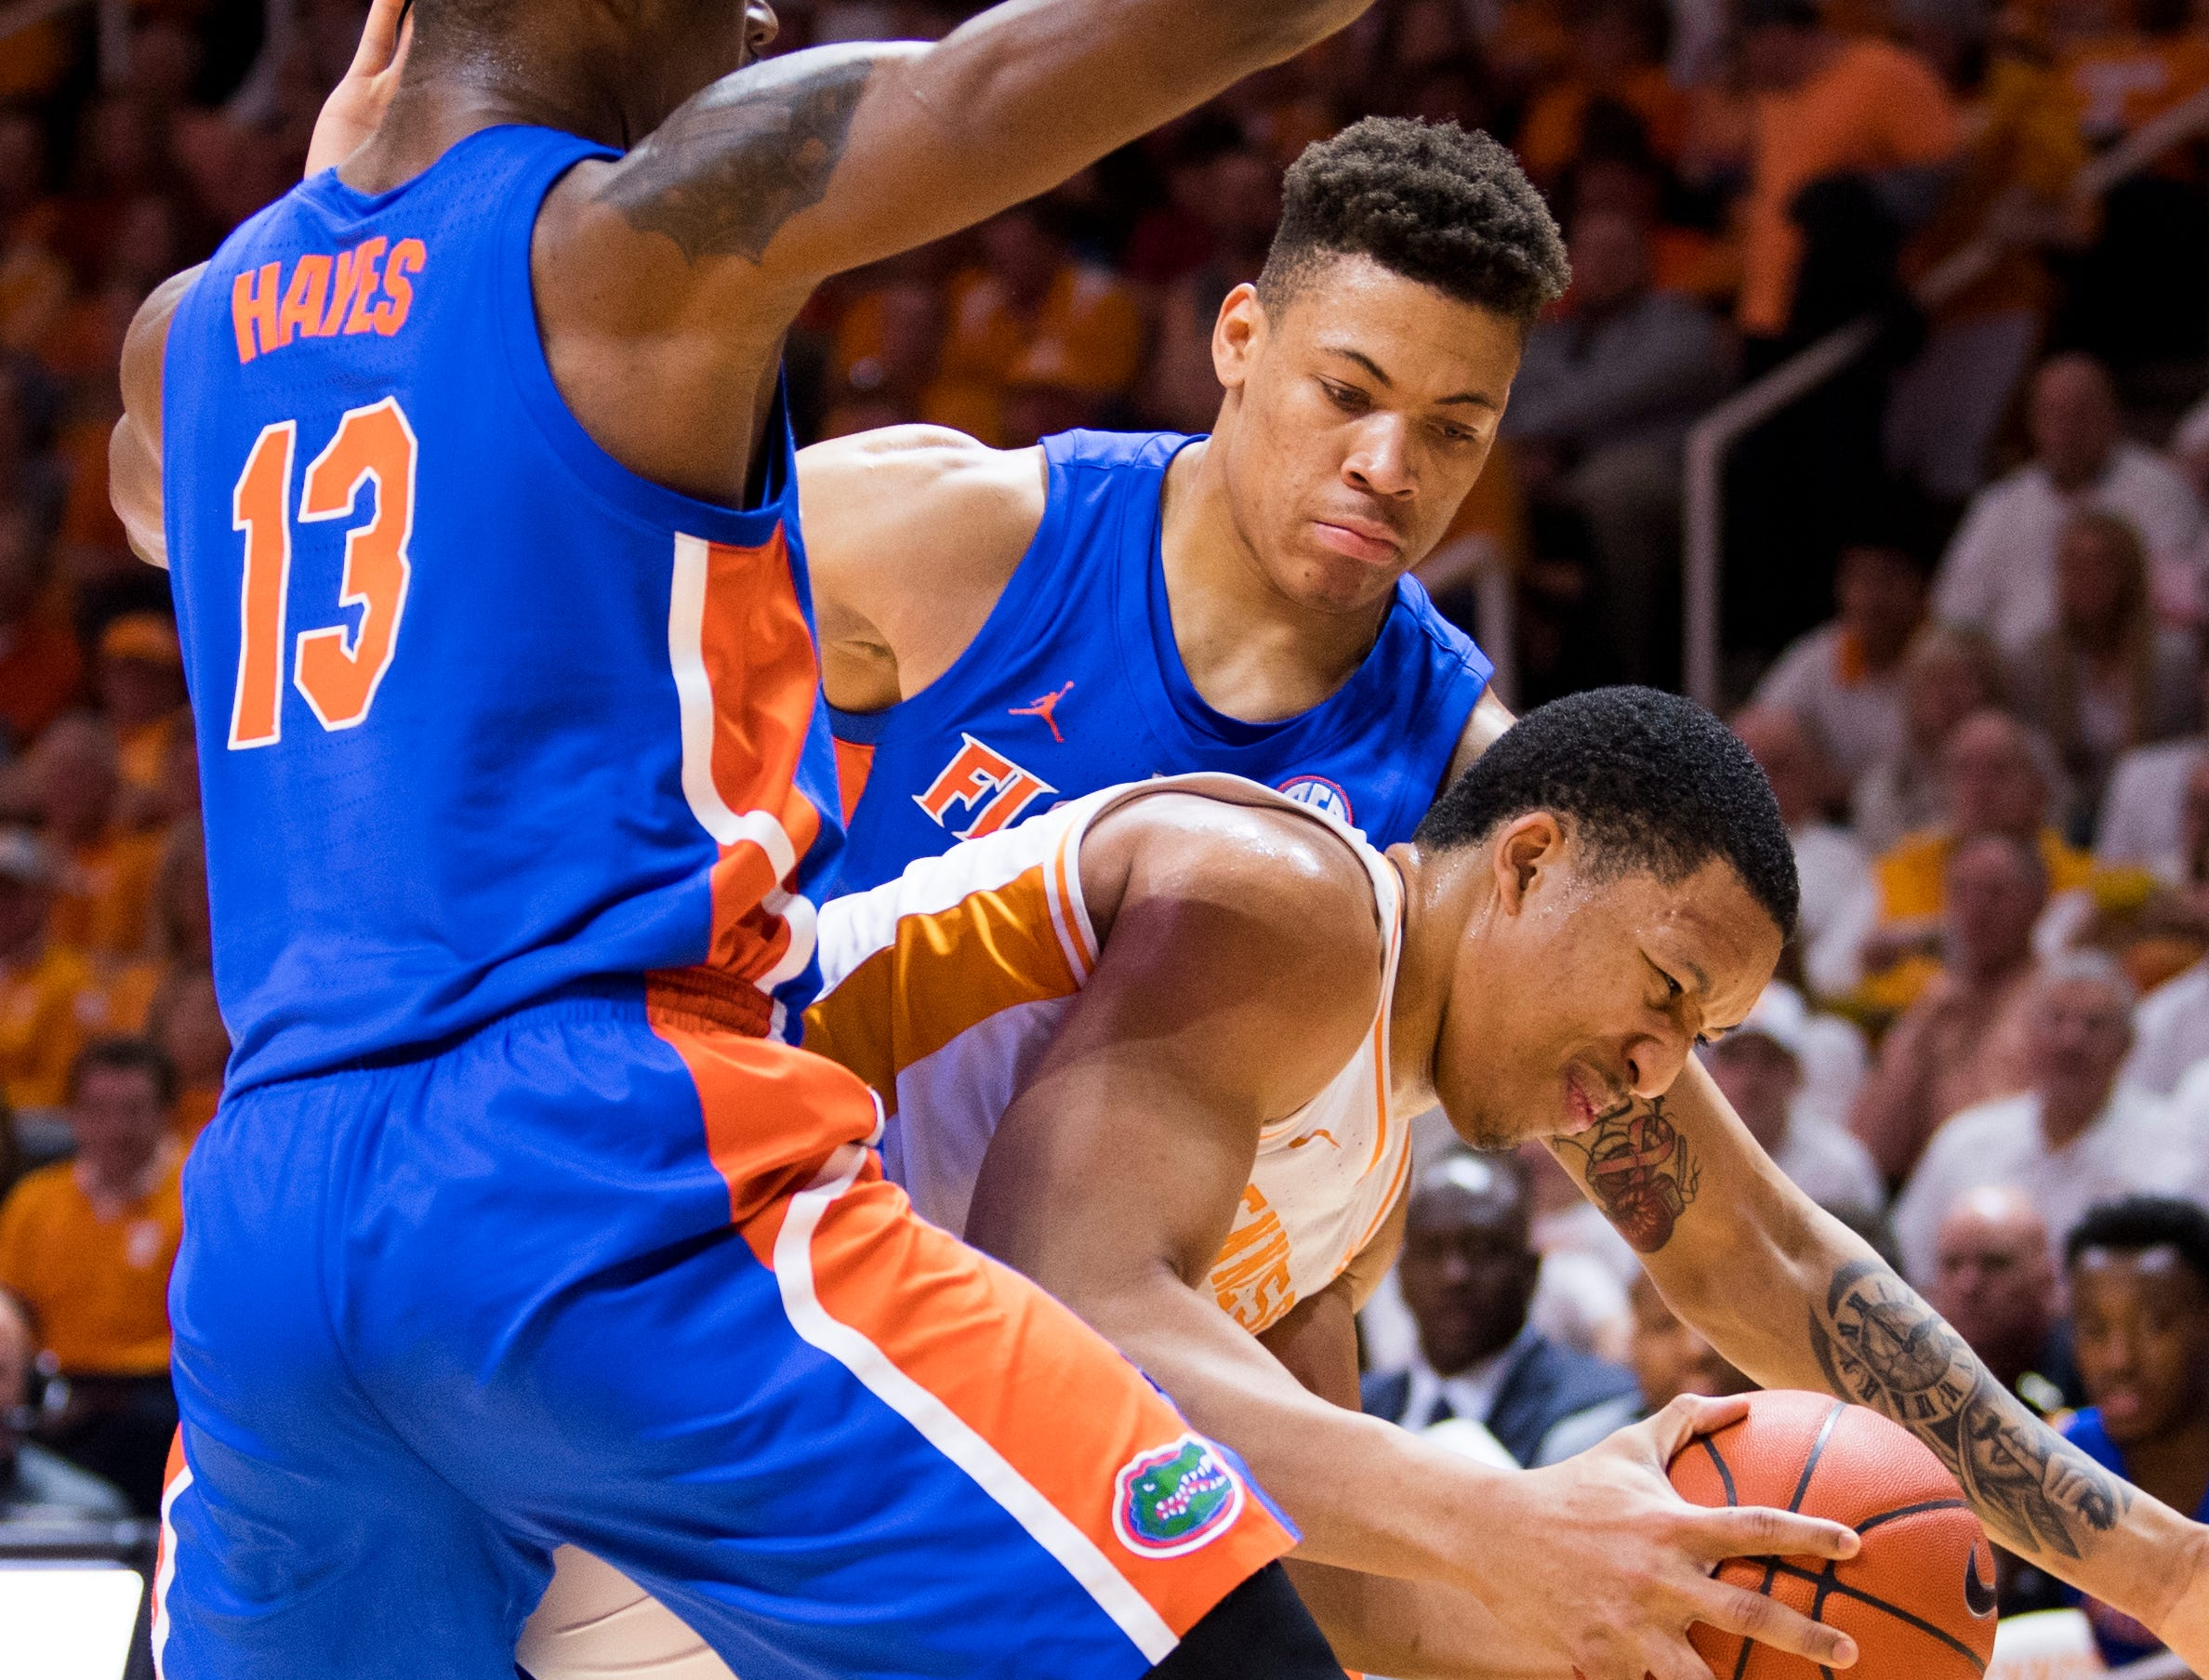 Tennessee forward Grant Williams (2) is double teamed during Tennessee's home SEC conference game against Florida at Thompson-Boling Arena in Knoxville on Saturday, February 9, 2019.